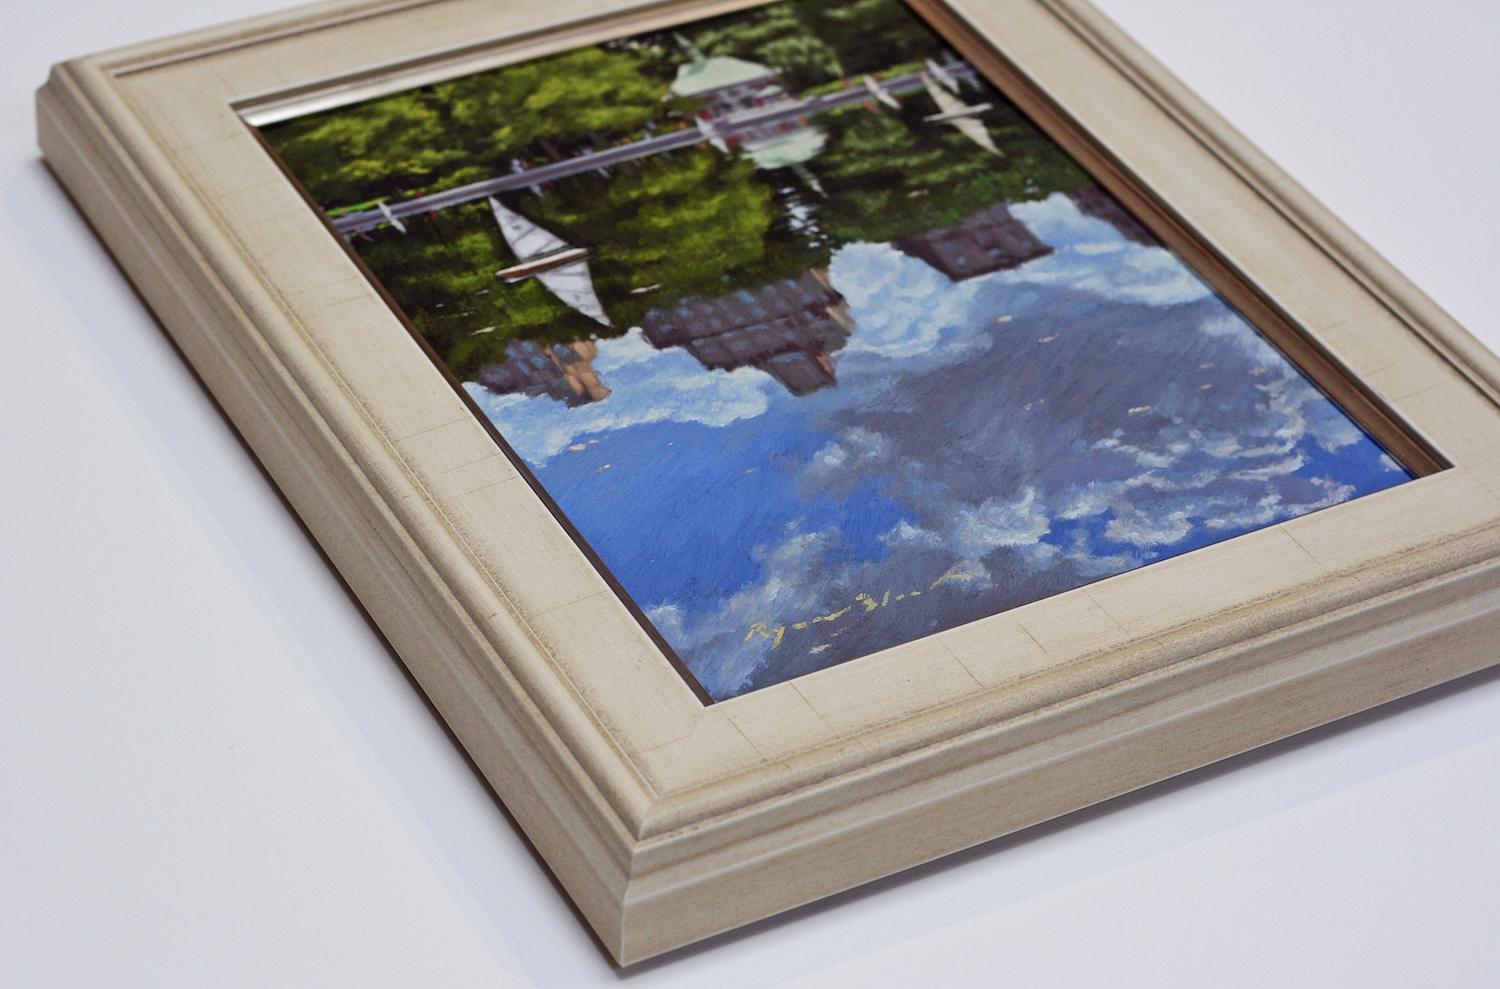 Creative custom framing options at Page Waterman Fine Framing in Wellesley Square.